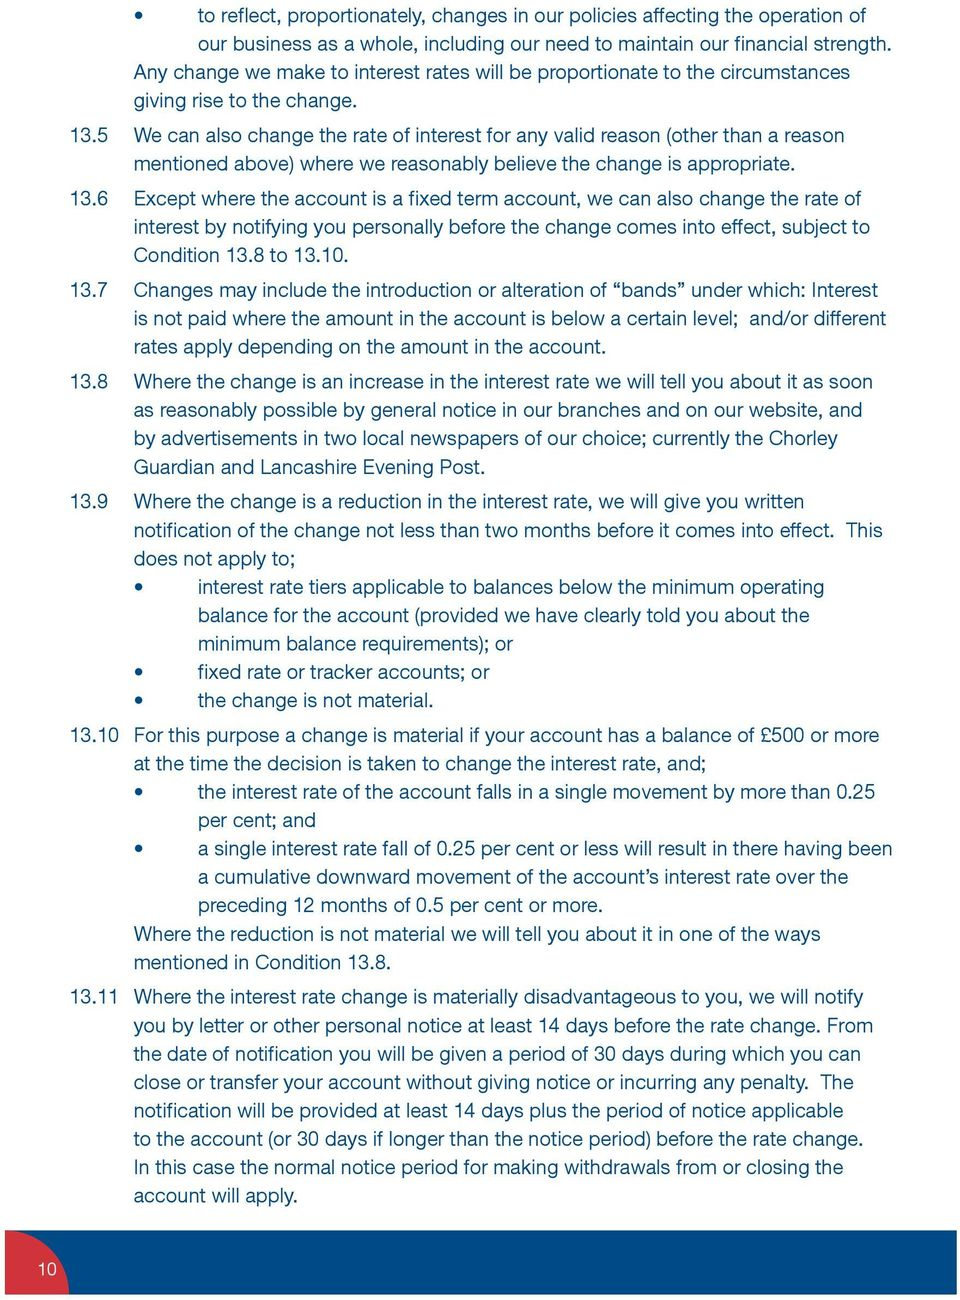 5 We can also change the rate of interest for any valid reason (other than a reason mentioned above) where we reasonably believe the change is appropriate. 13.